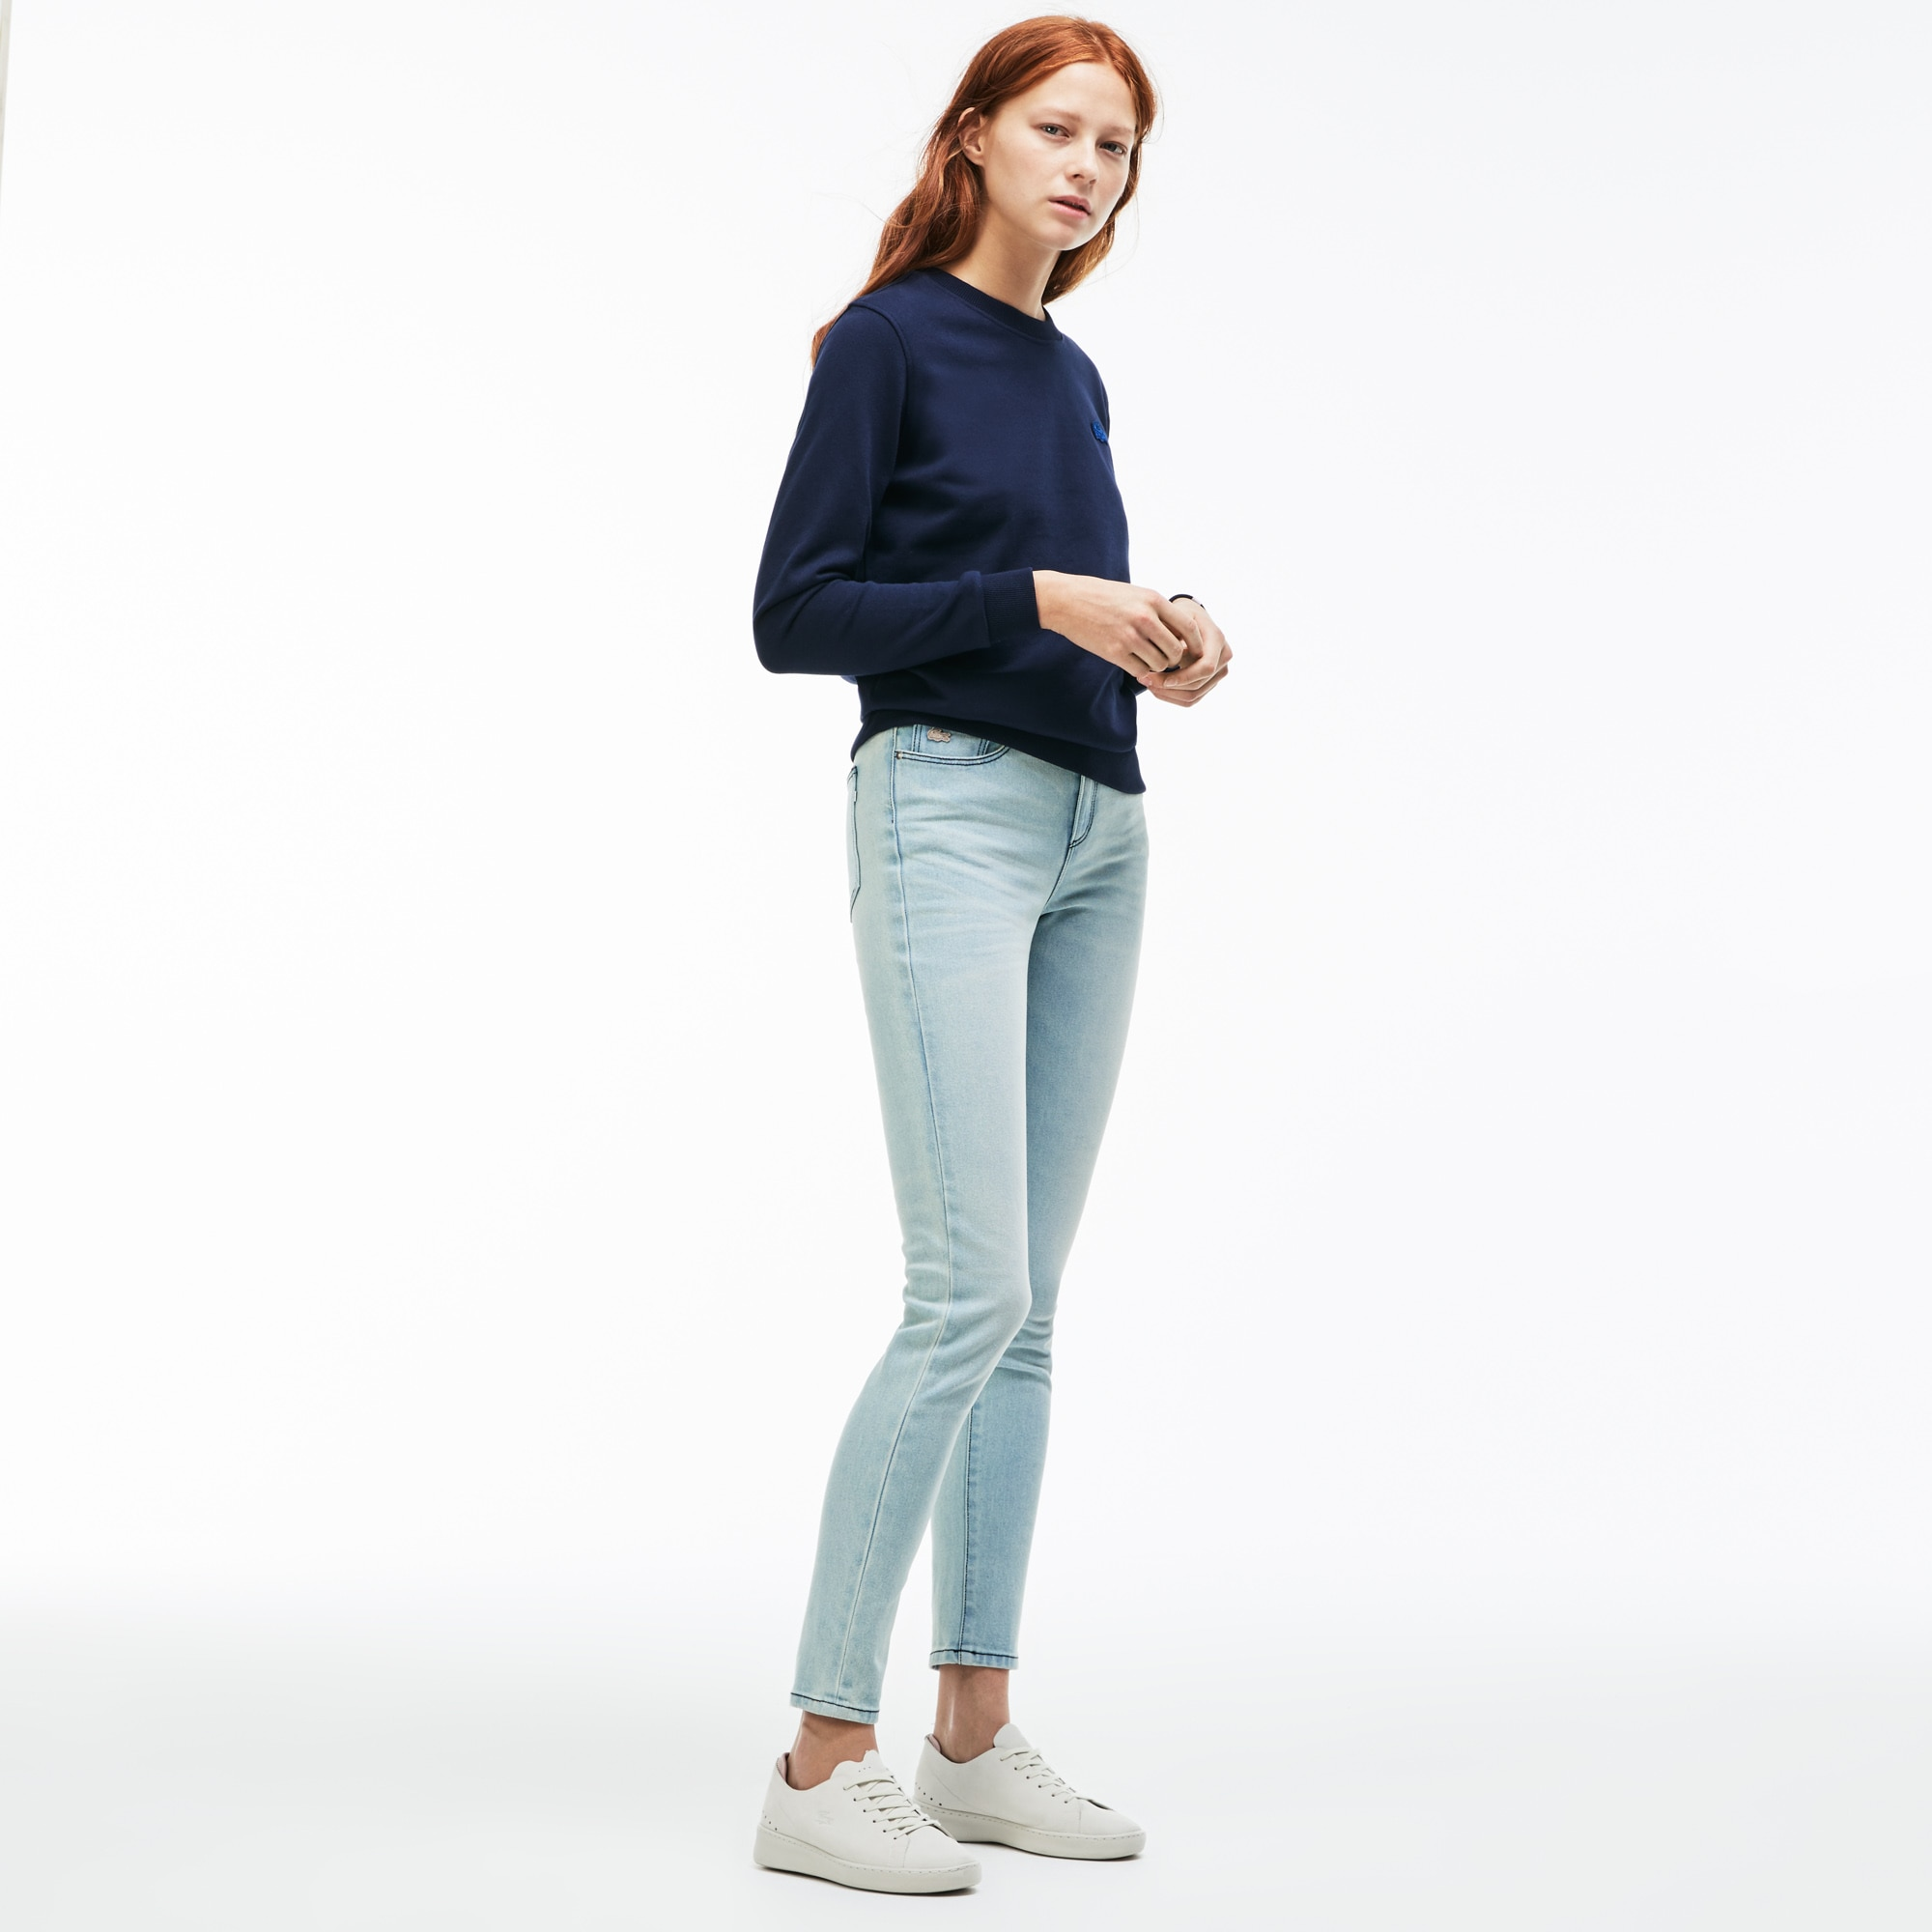 Jeans 5 tasche Lacoste LIVE in denim di cotone stretch